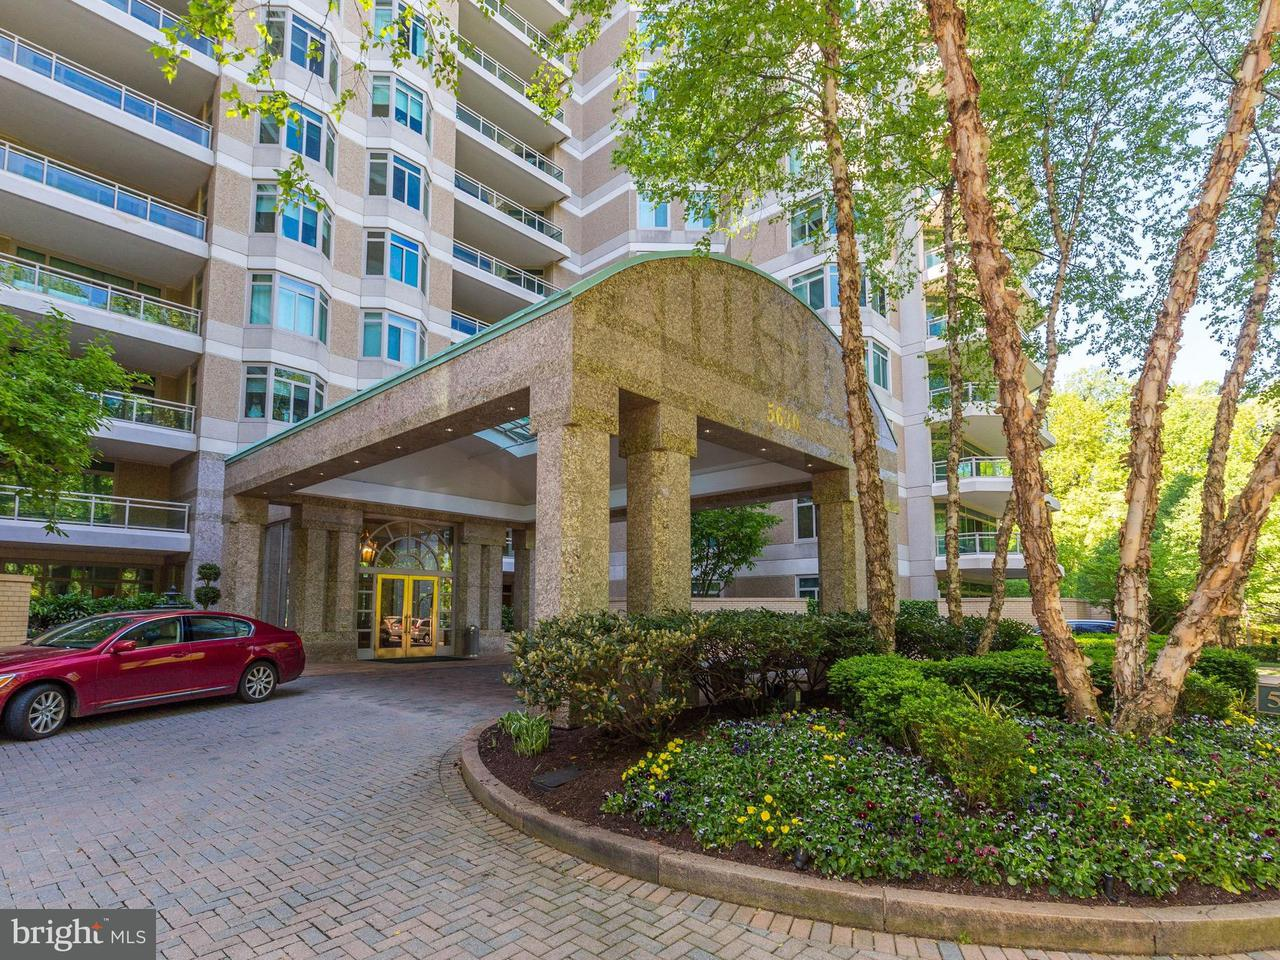 Condominium for Sale at 5630 WISCONSIN AVE #1104 5630 WISCONSIN AVE #1104 Chevy Chase, Maryland 20815 United States